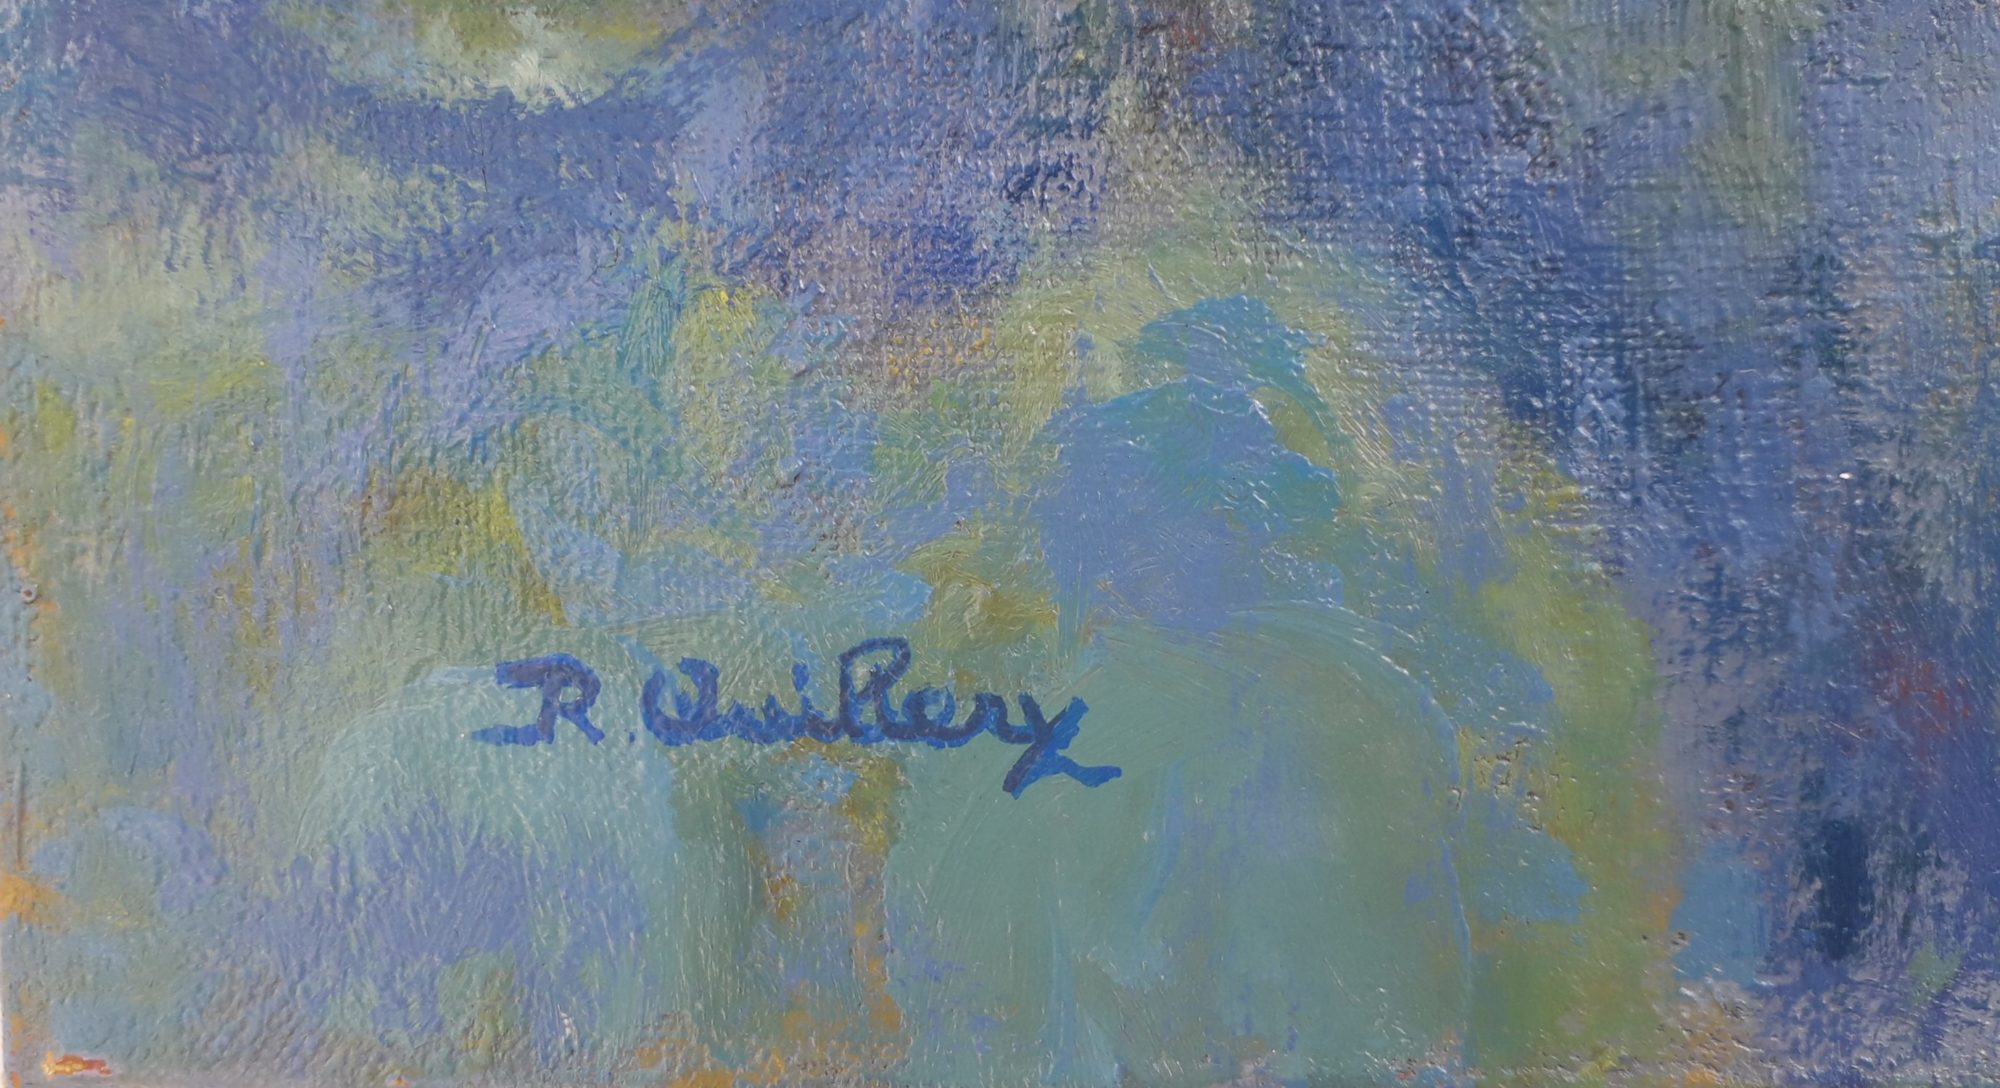 roger-quillery-abstraction-signature